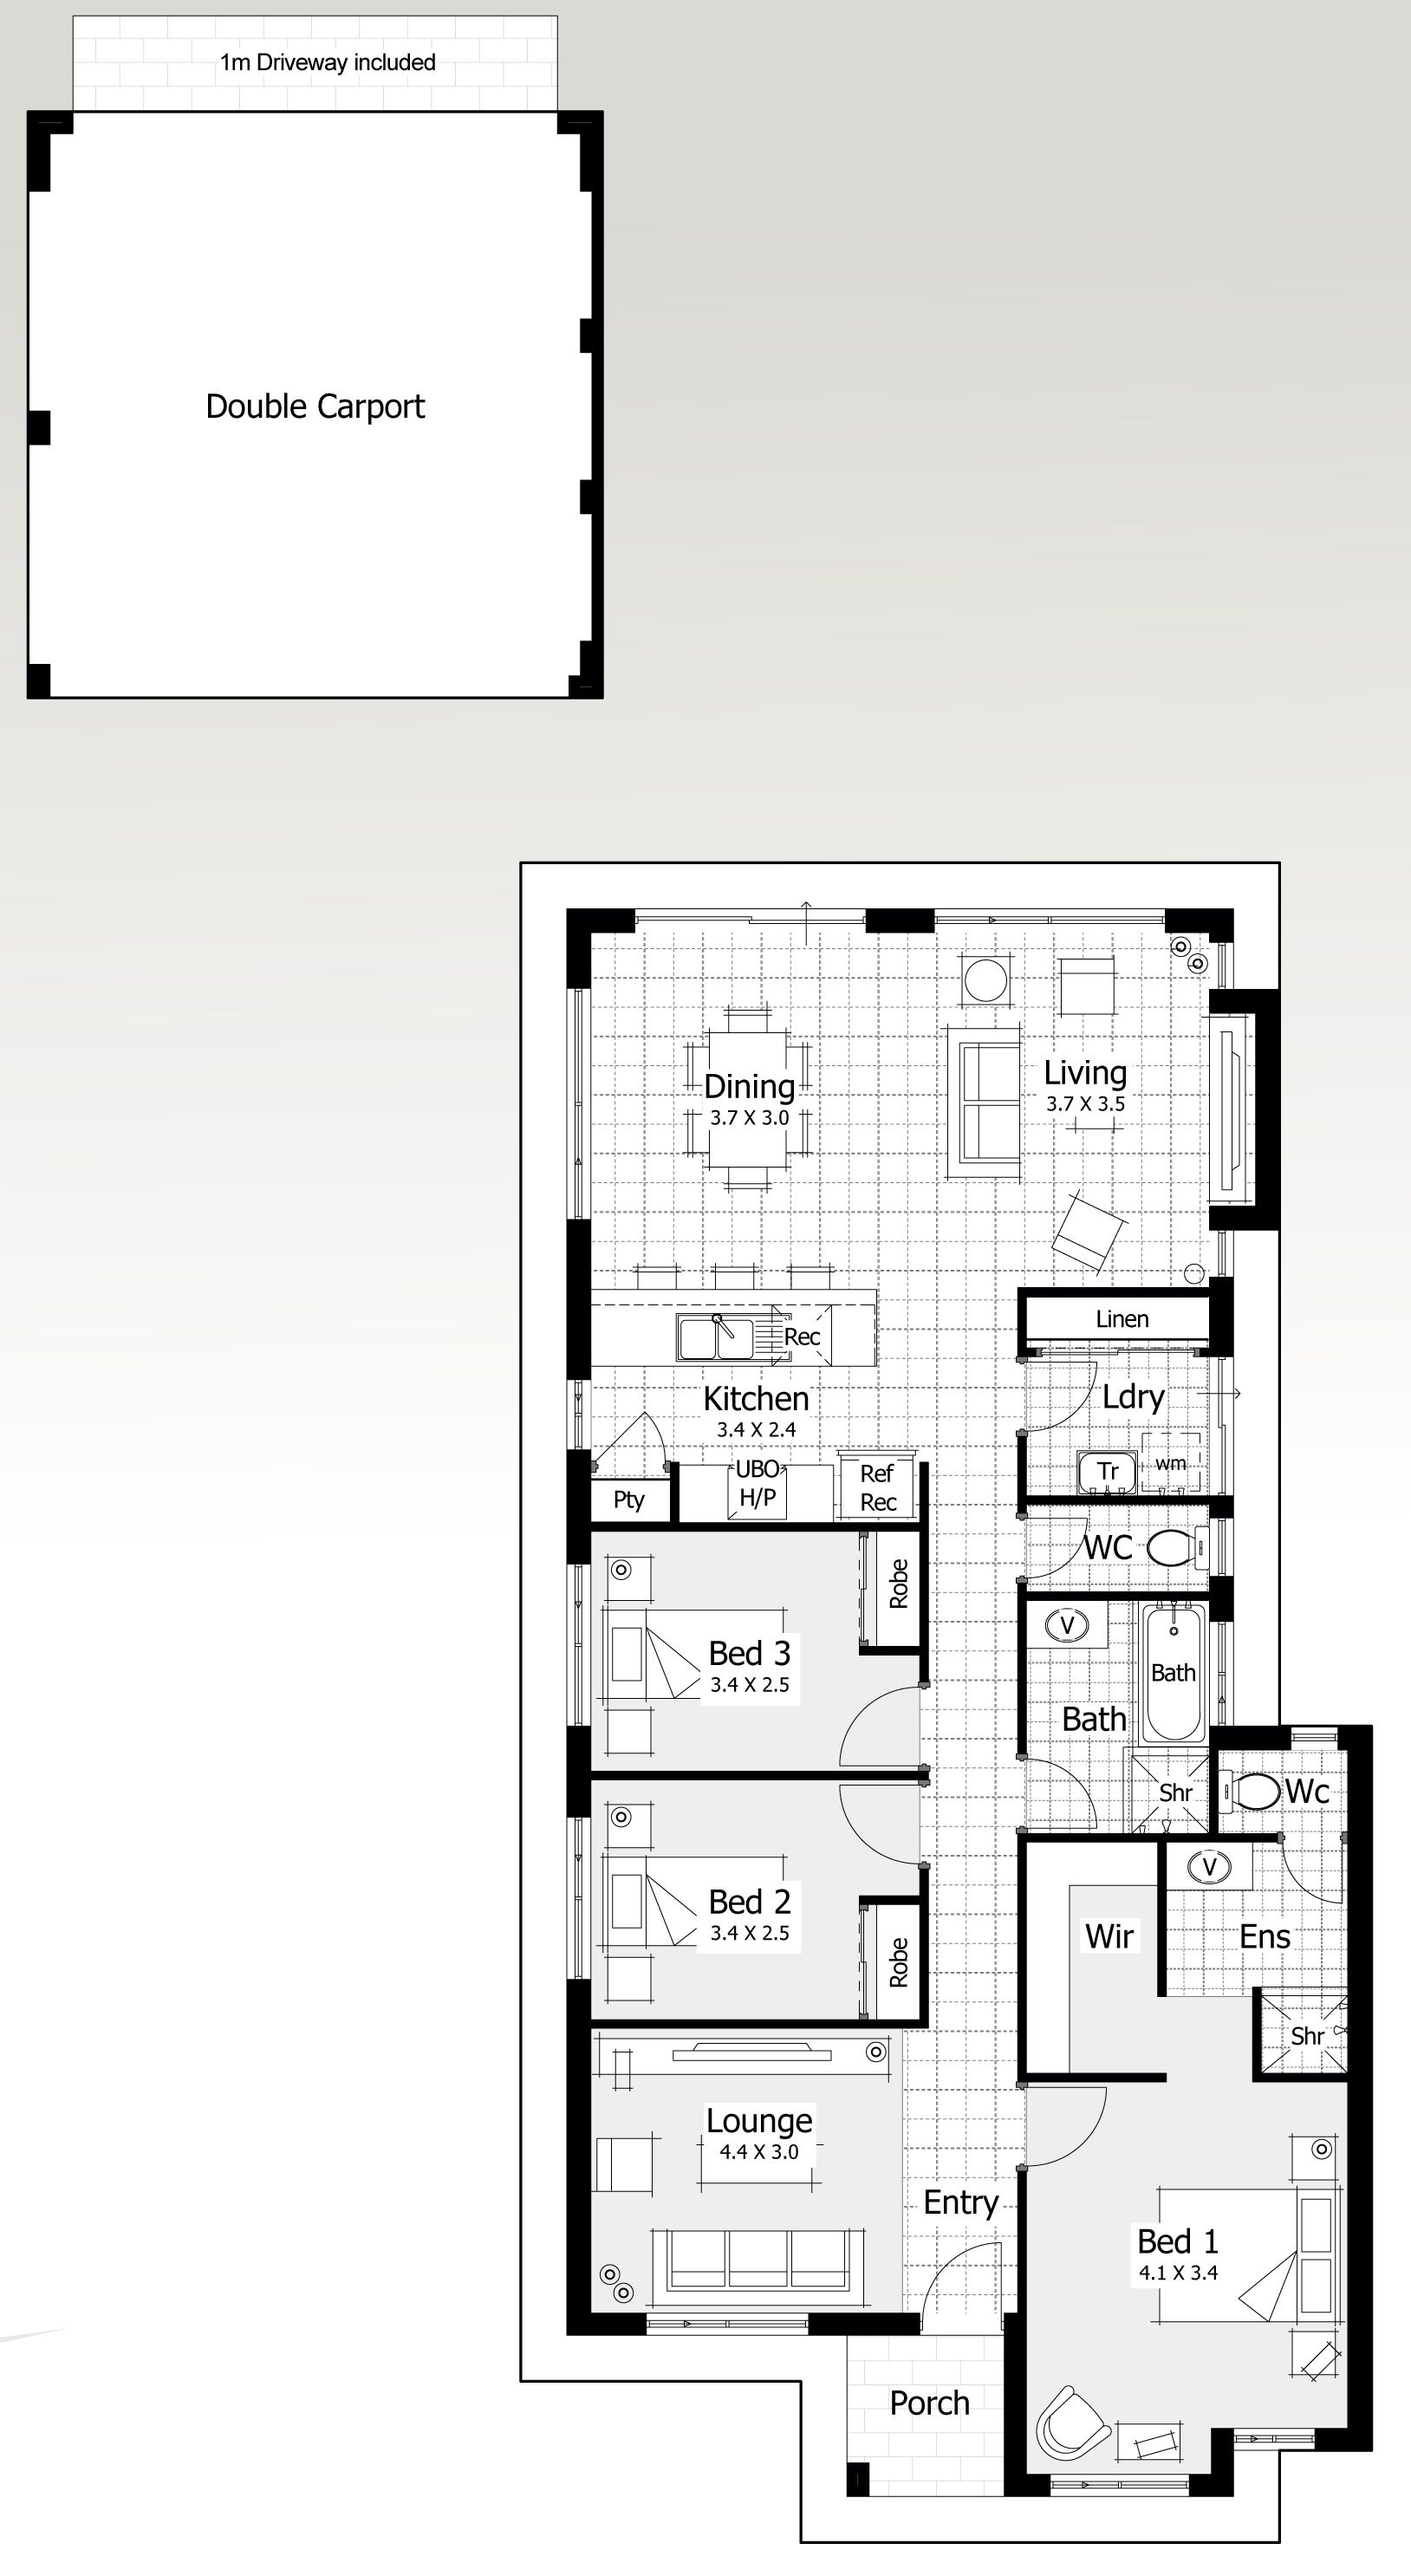 10 and 11 metre wide home designs home buyers centre for Loft home designs perth